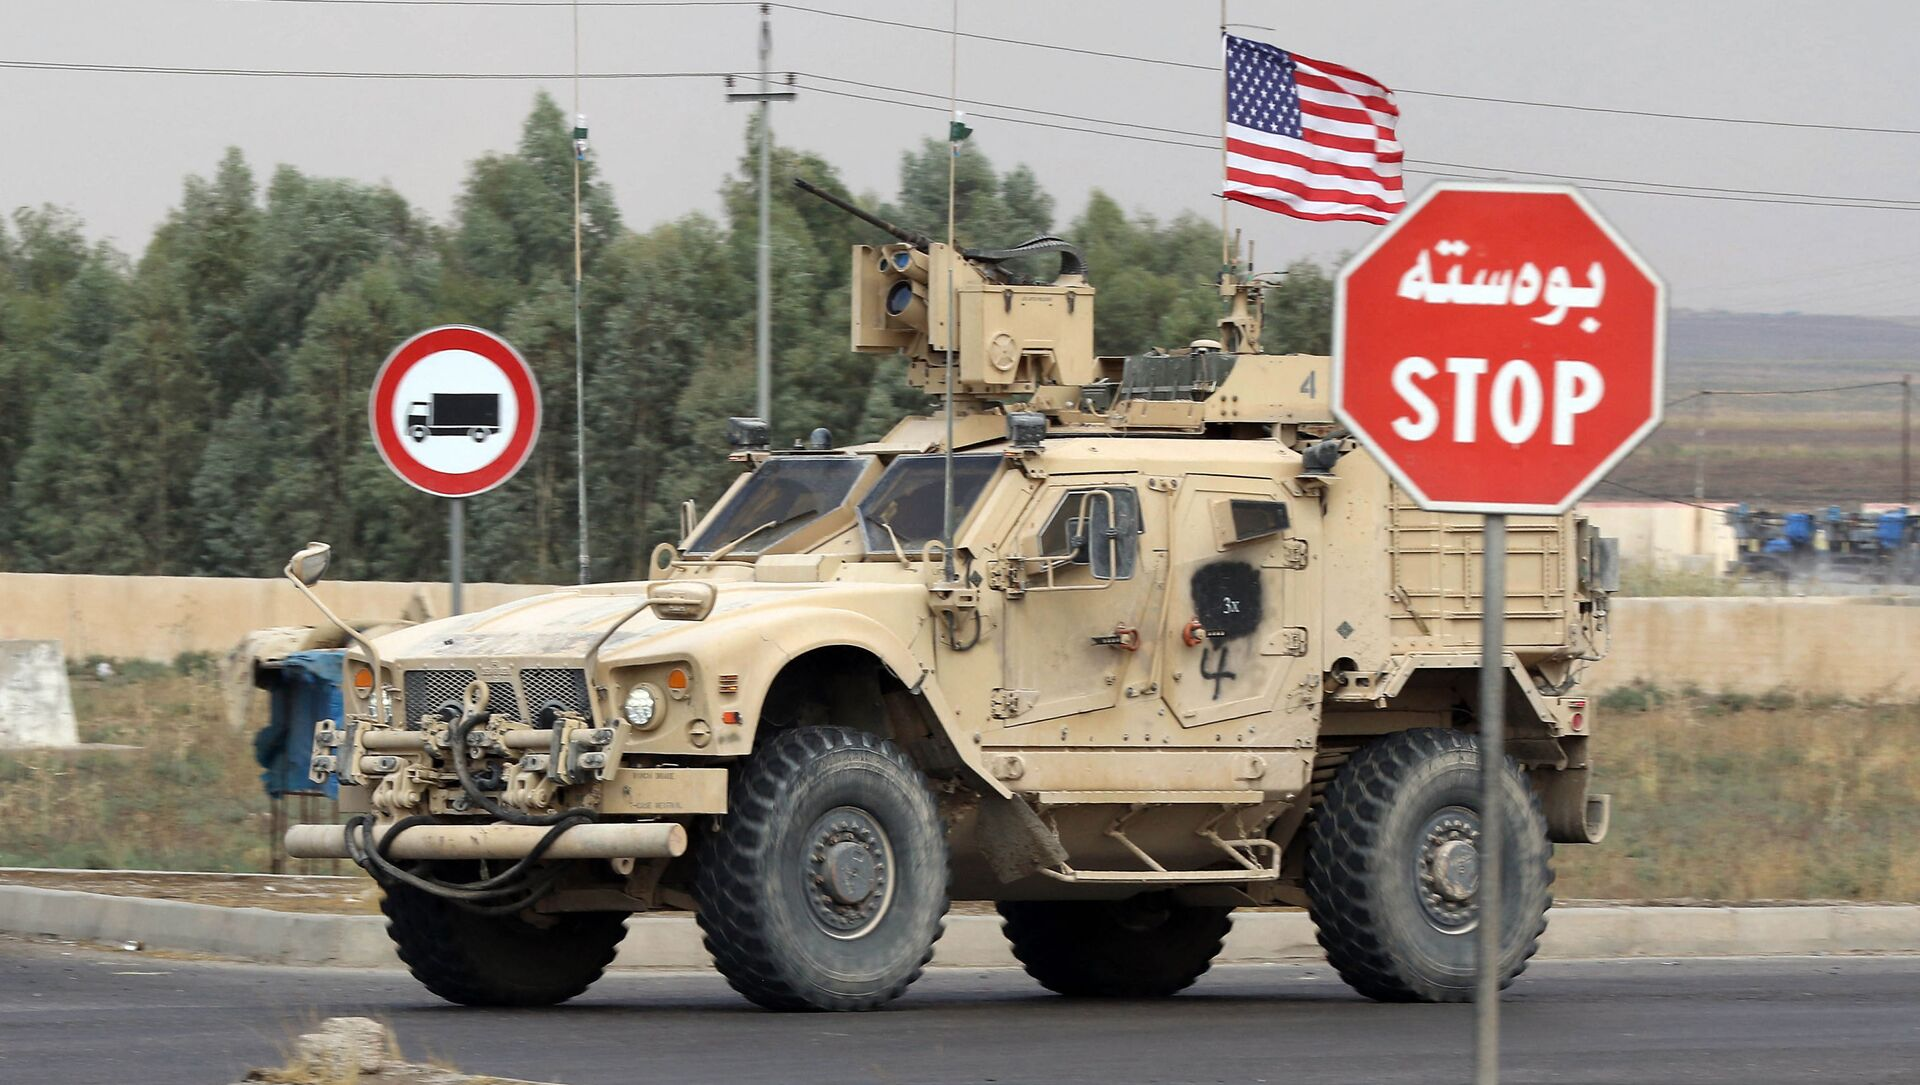 A US military vehicle, part of a convoy, arrives near the Iraqi Kurdish town of Bardarash in the Dohuk governorate after withdrawing from northern Syria on October 21, 2019 - Sputnik Italia, 1920, 03.04.2021